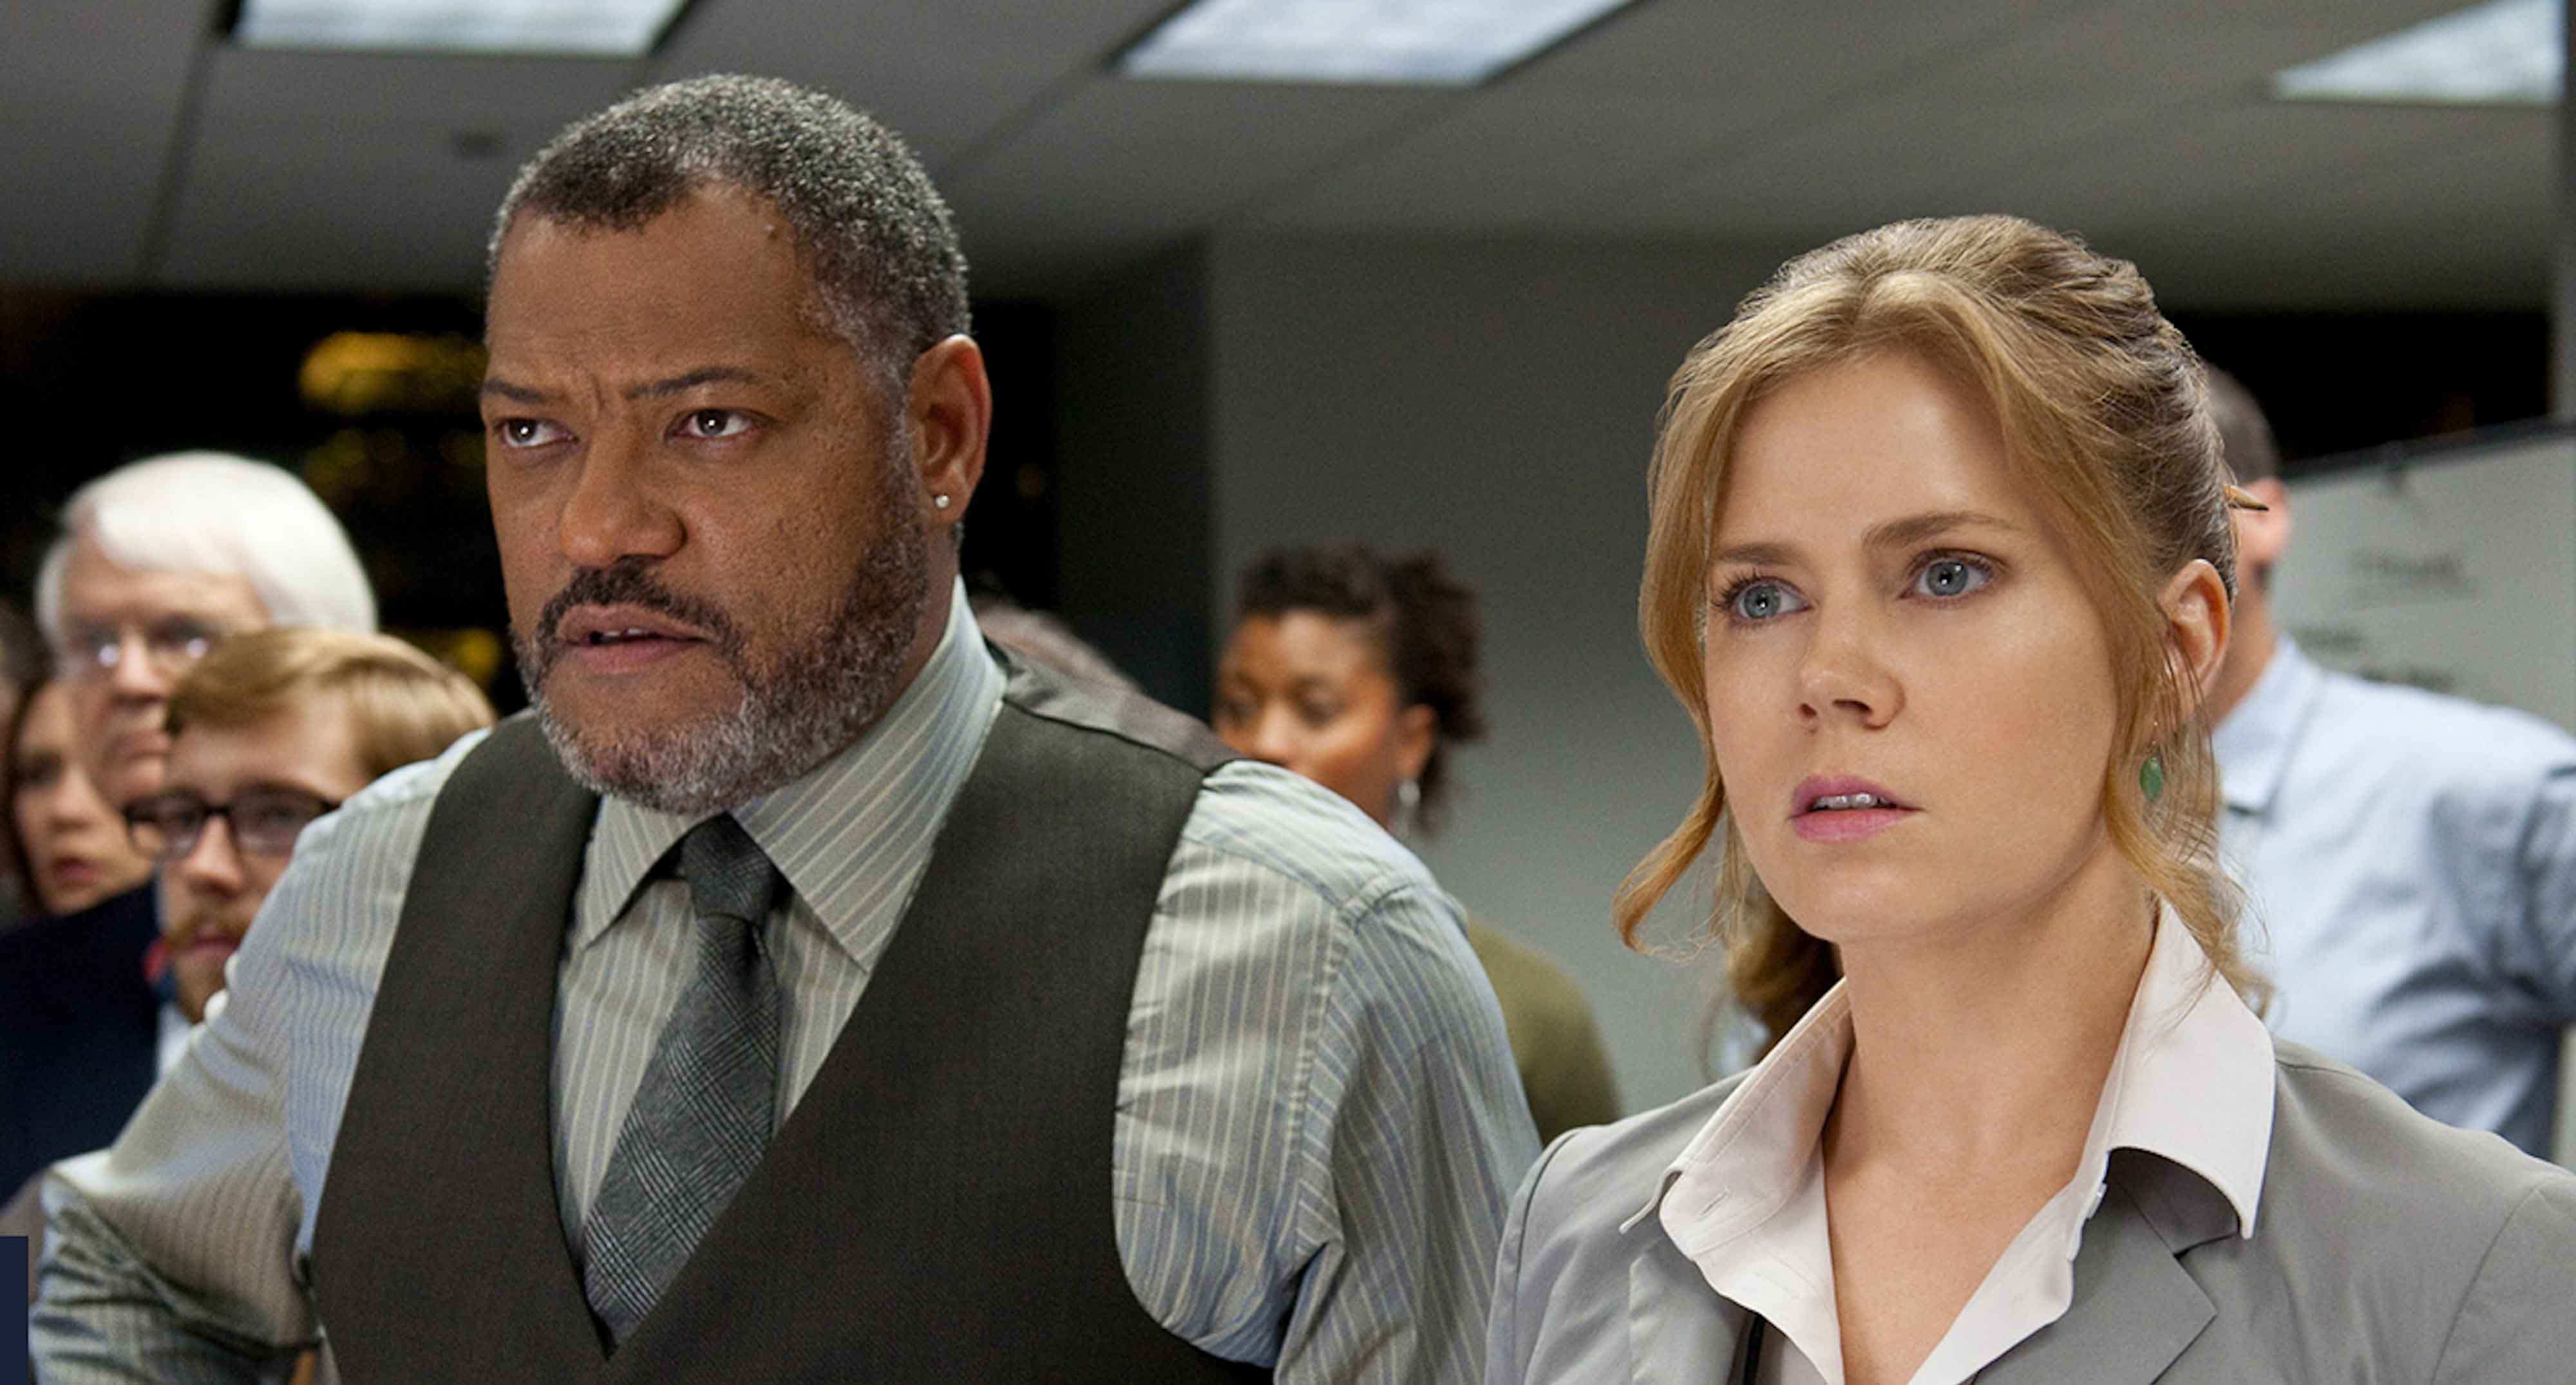 Laurence Fishburne Confirms No Perry White in 'Justice League'